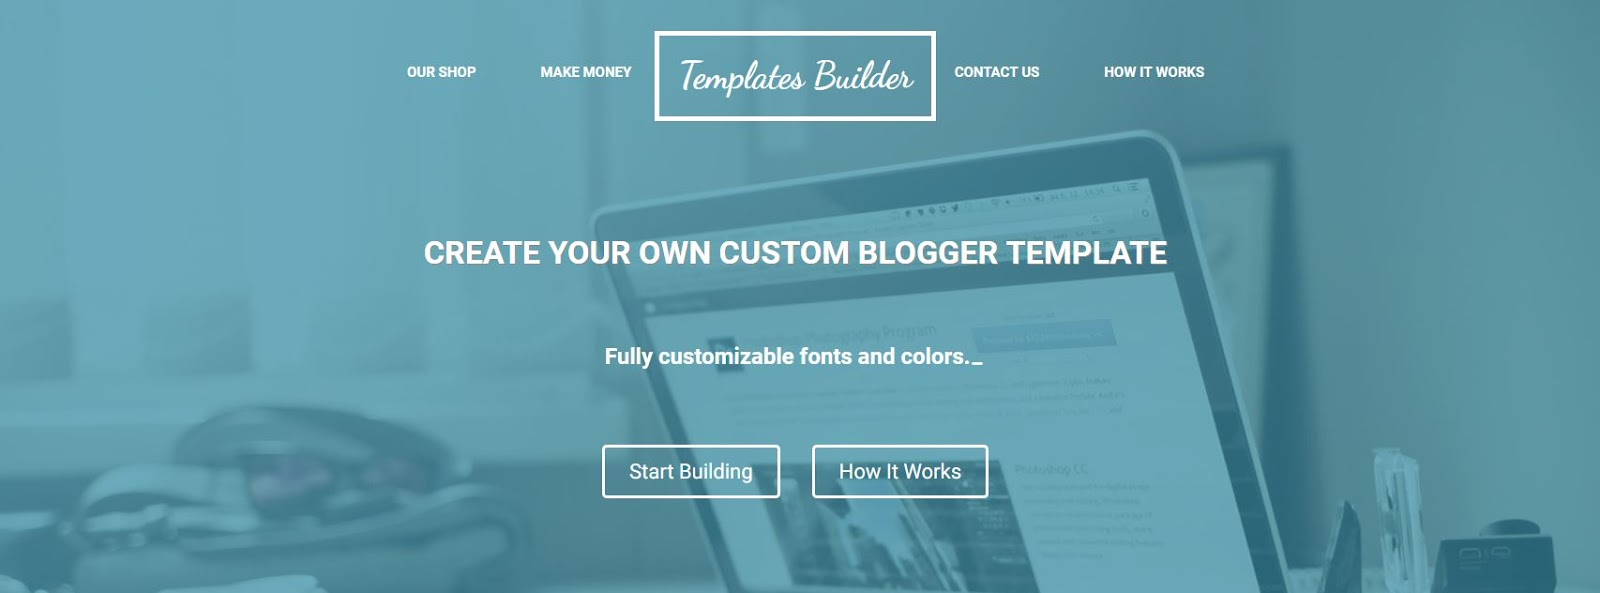 Giveaway From Blogger Templates Builder | Life and Linda